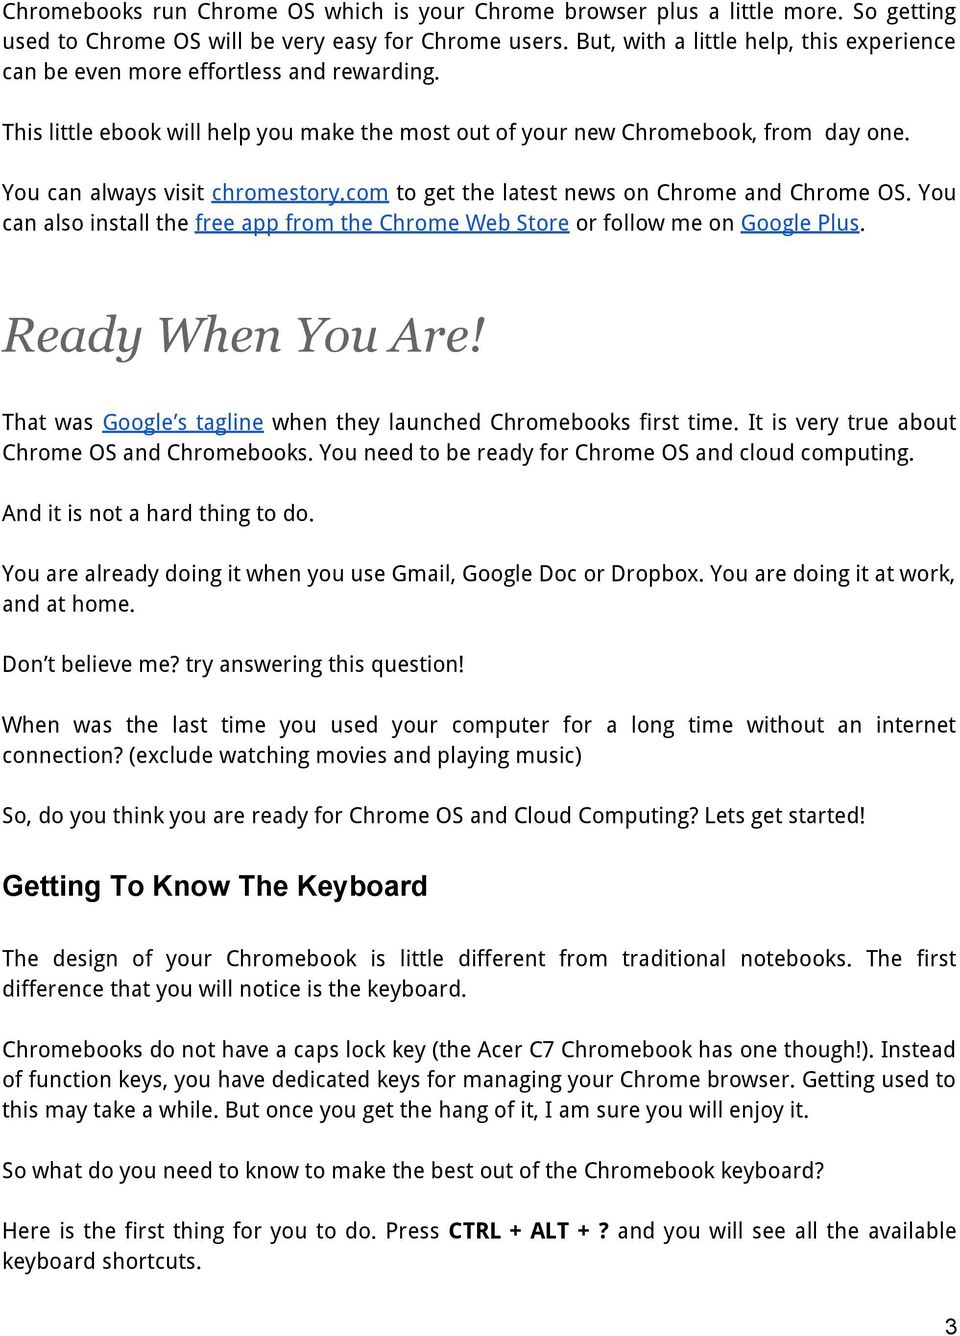 You can always visit chromestory.com to get the latest news on Chrome and Chrome OS. You can also install the free app from the Chrome Web Store or follow me on Google Plus. Ready When You Are!